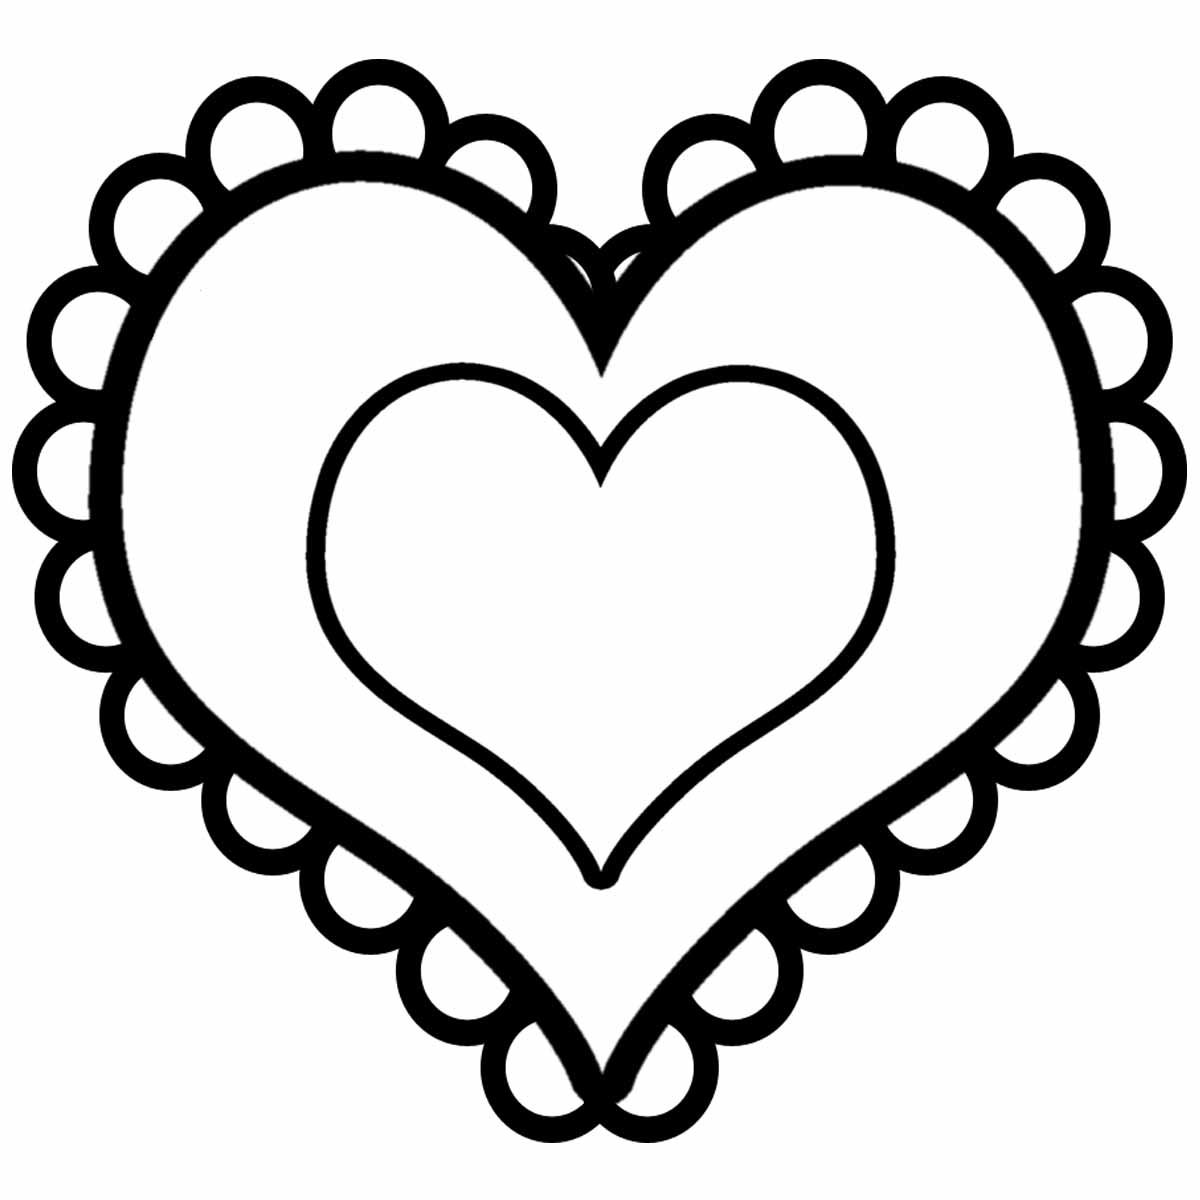 heart color pages free printable heart coloring pages for kids heart pages color